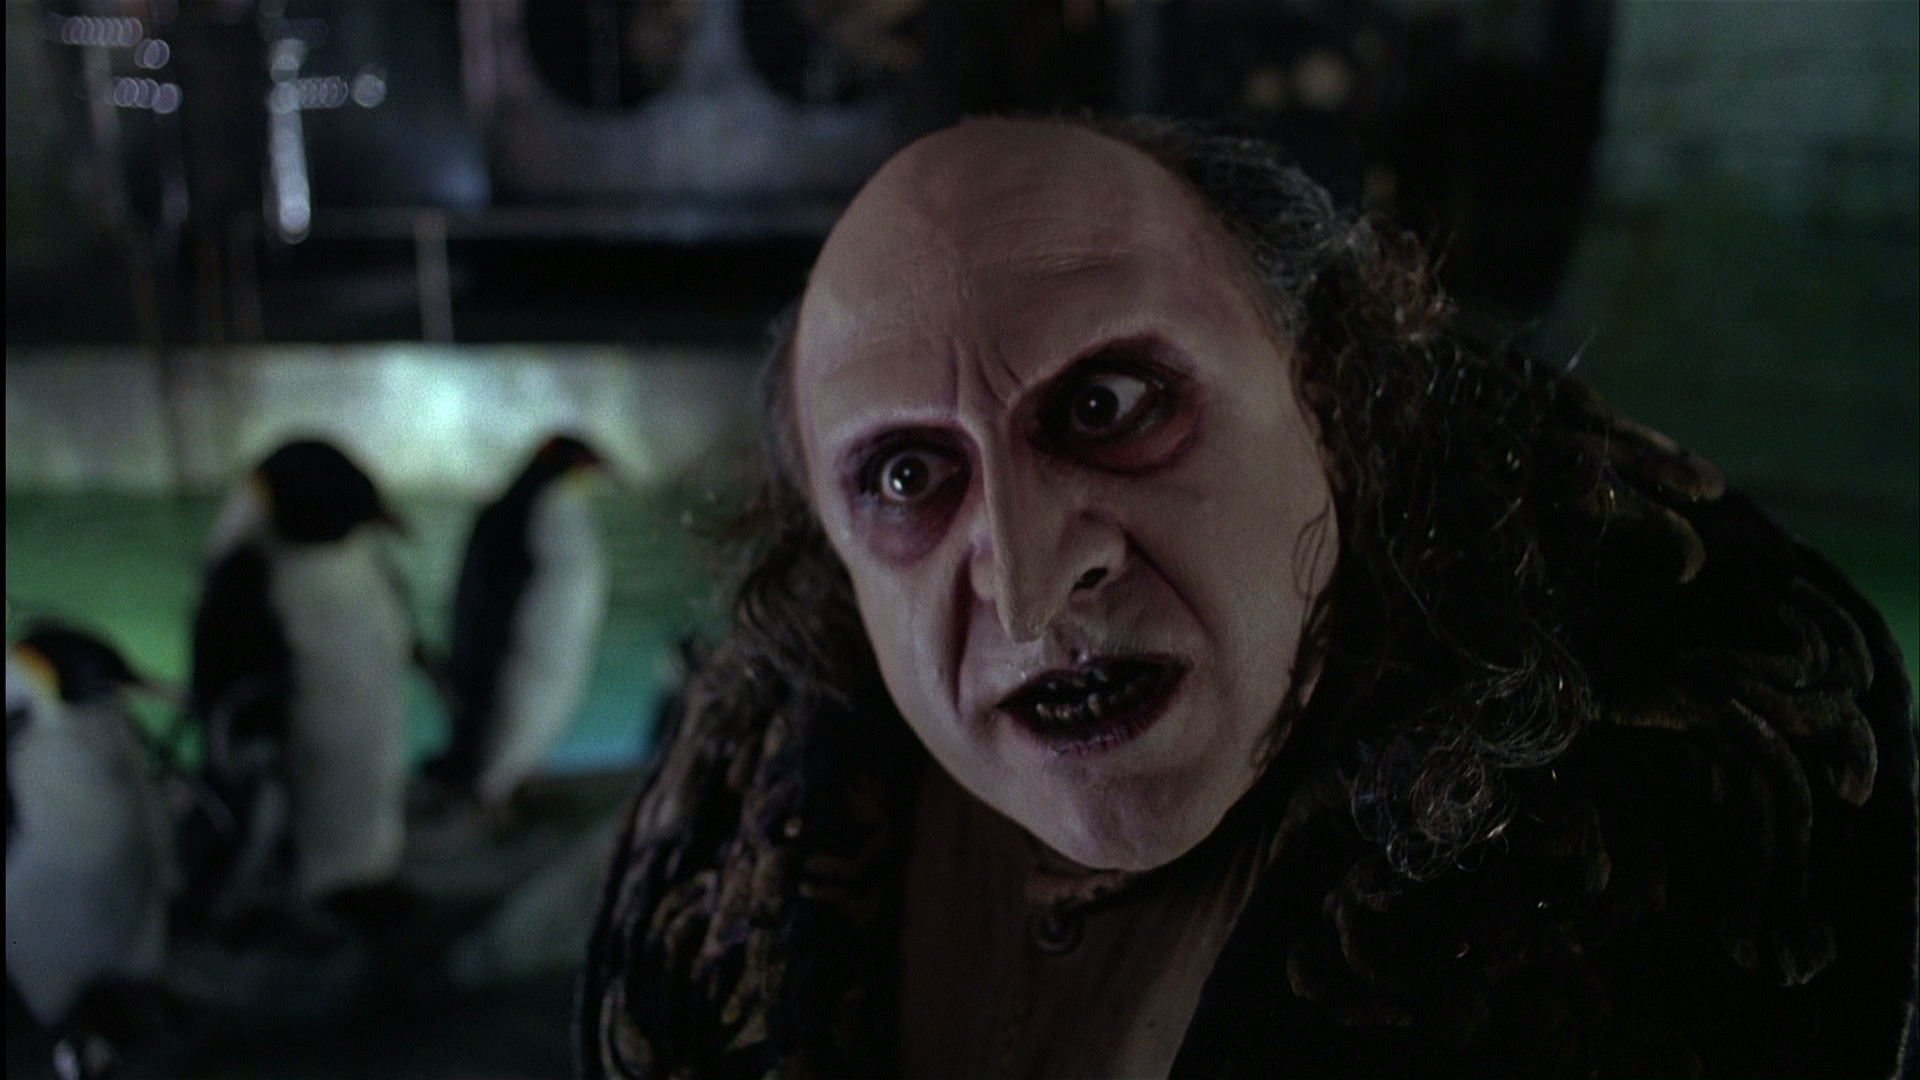 Danny Devito in Batman Returns.